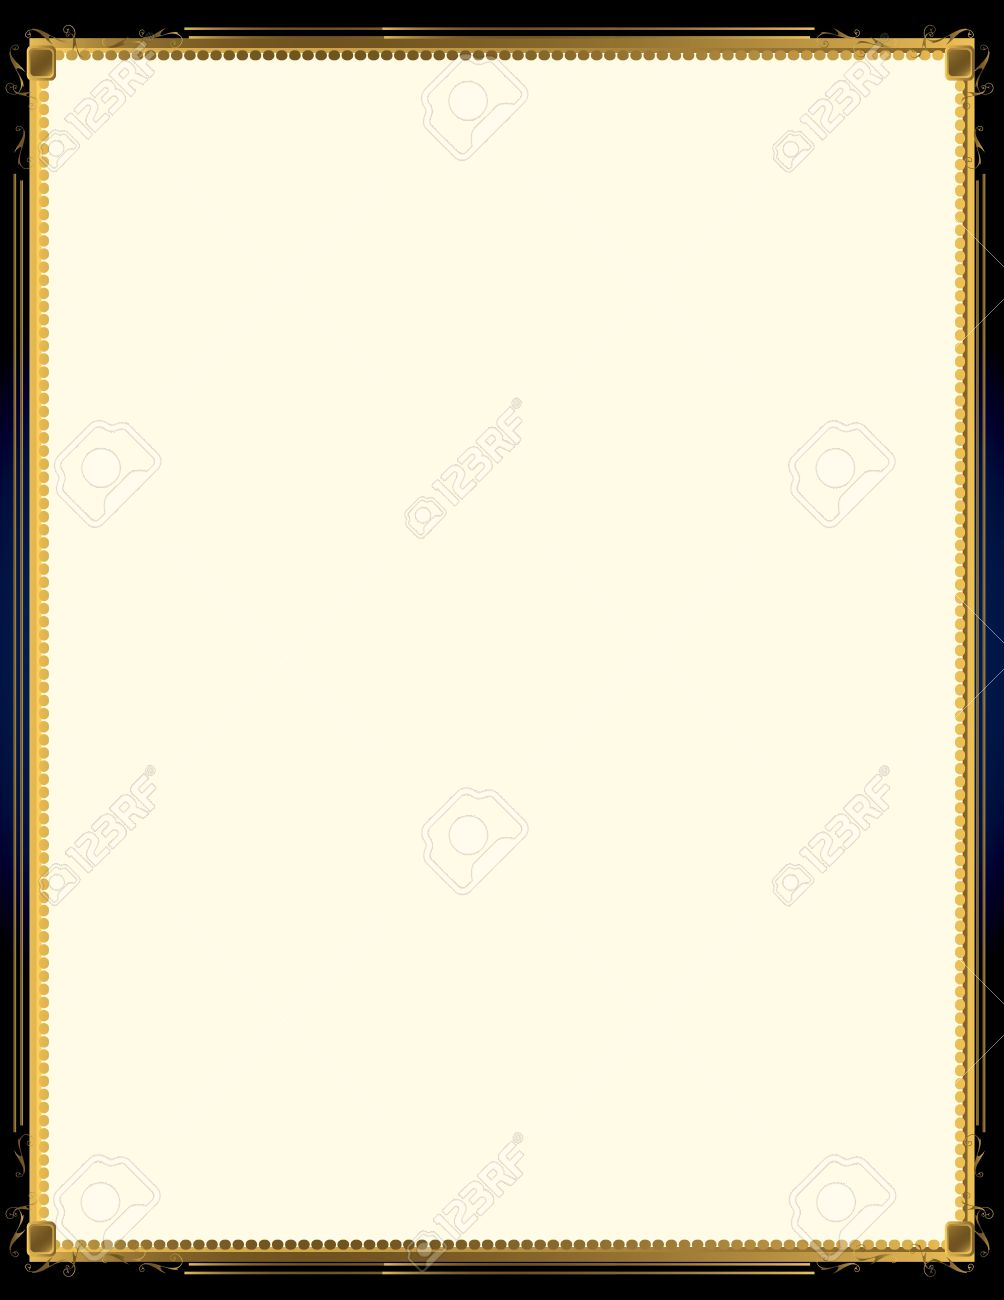 A blue background with and elegant blank frame design Stock Vector - 7315138